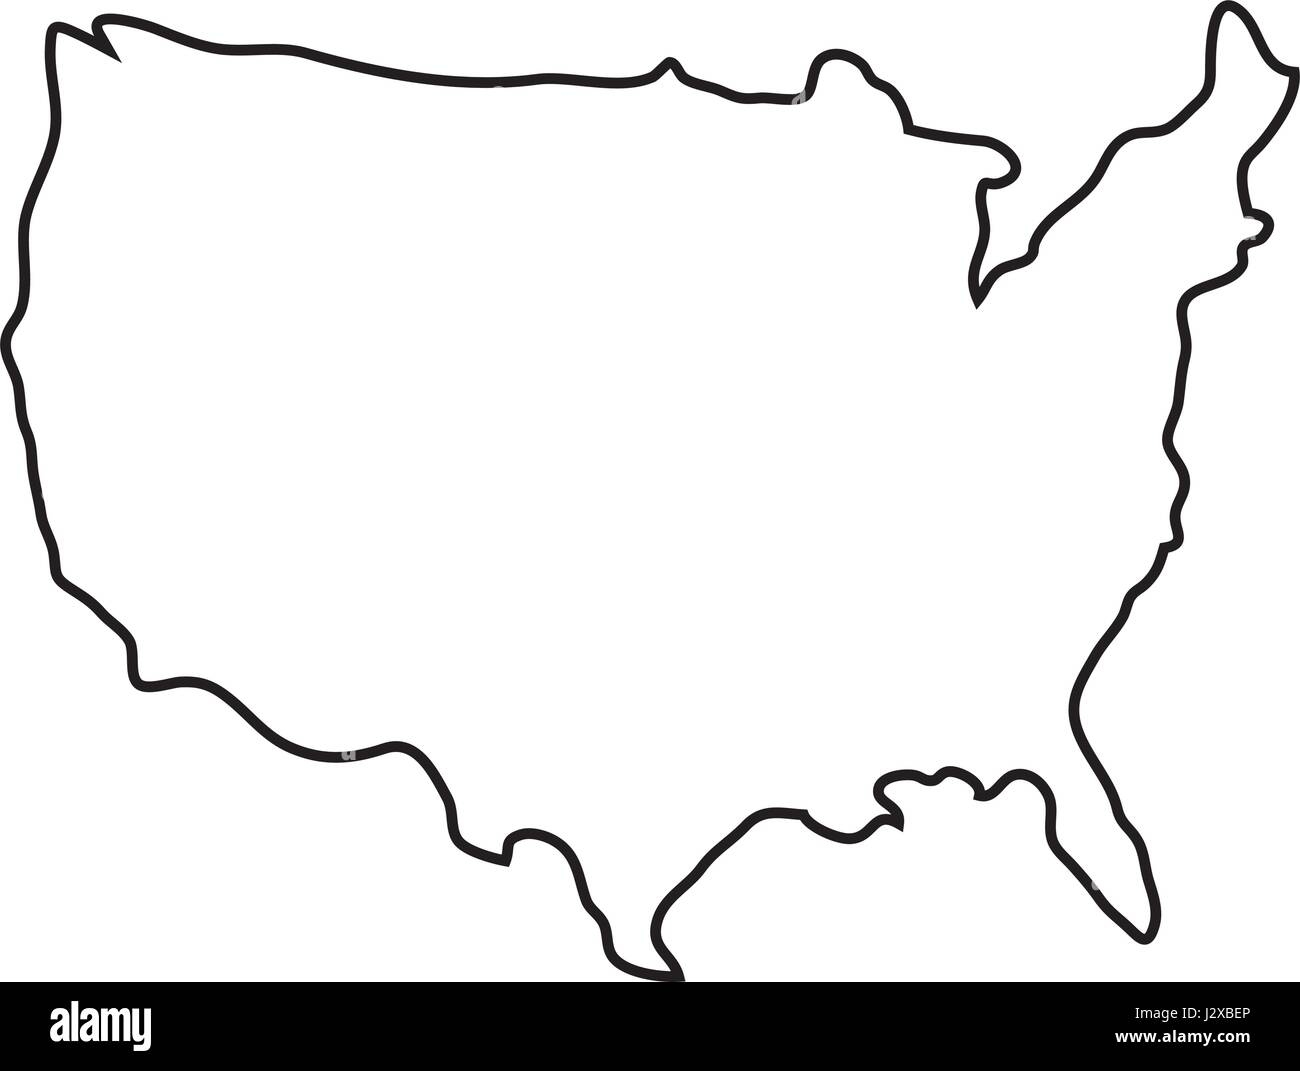 usa country map icon Stock Vector Art & Illustration, Vector Image ...